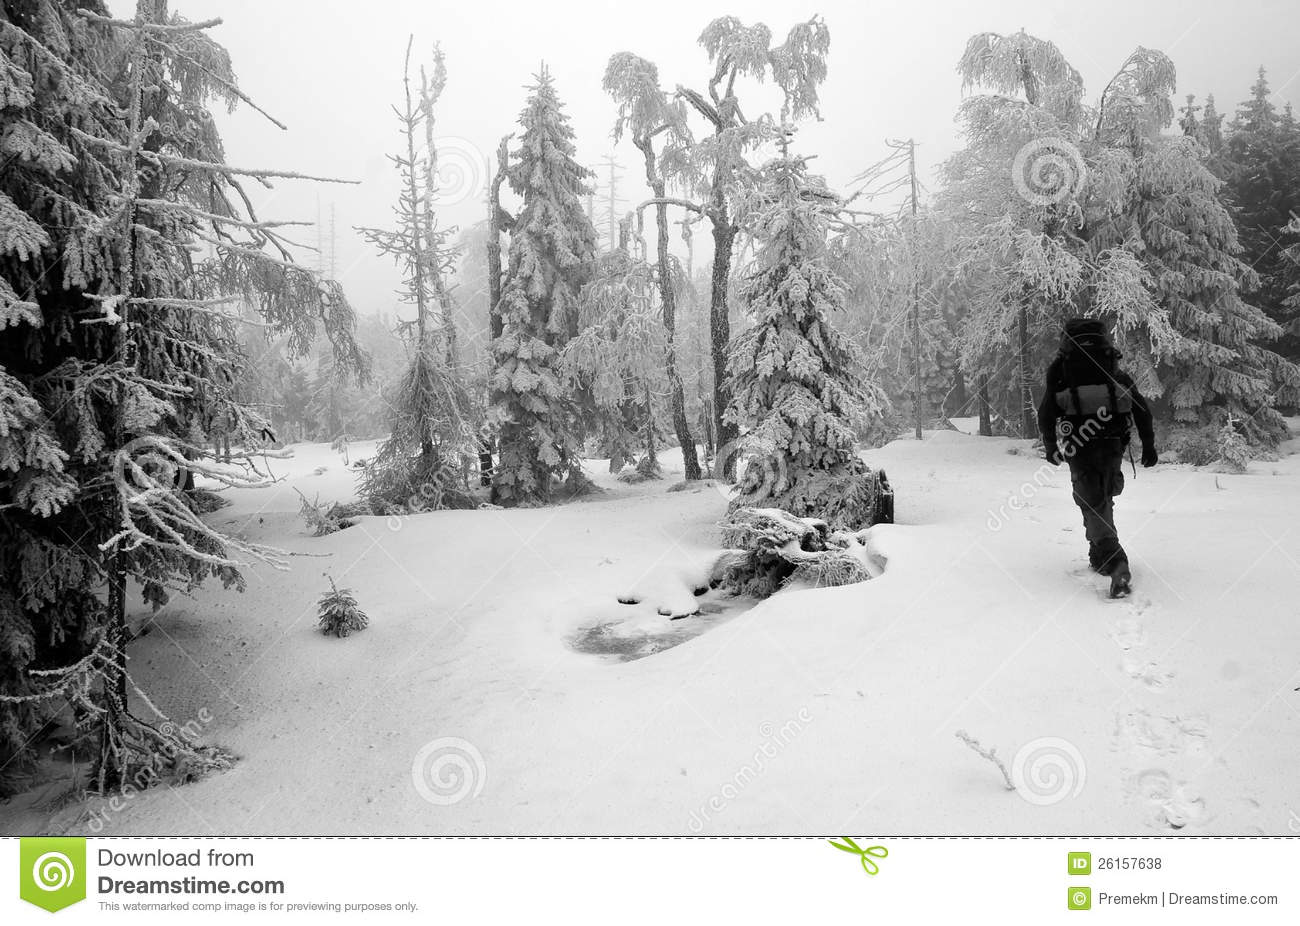 Person Walking in Dark and Misty Forest in Winter